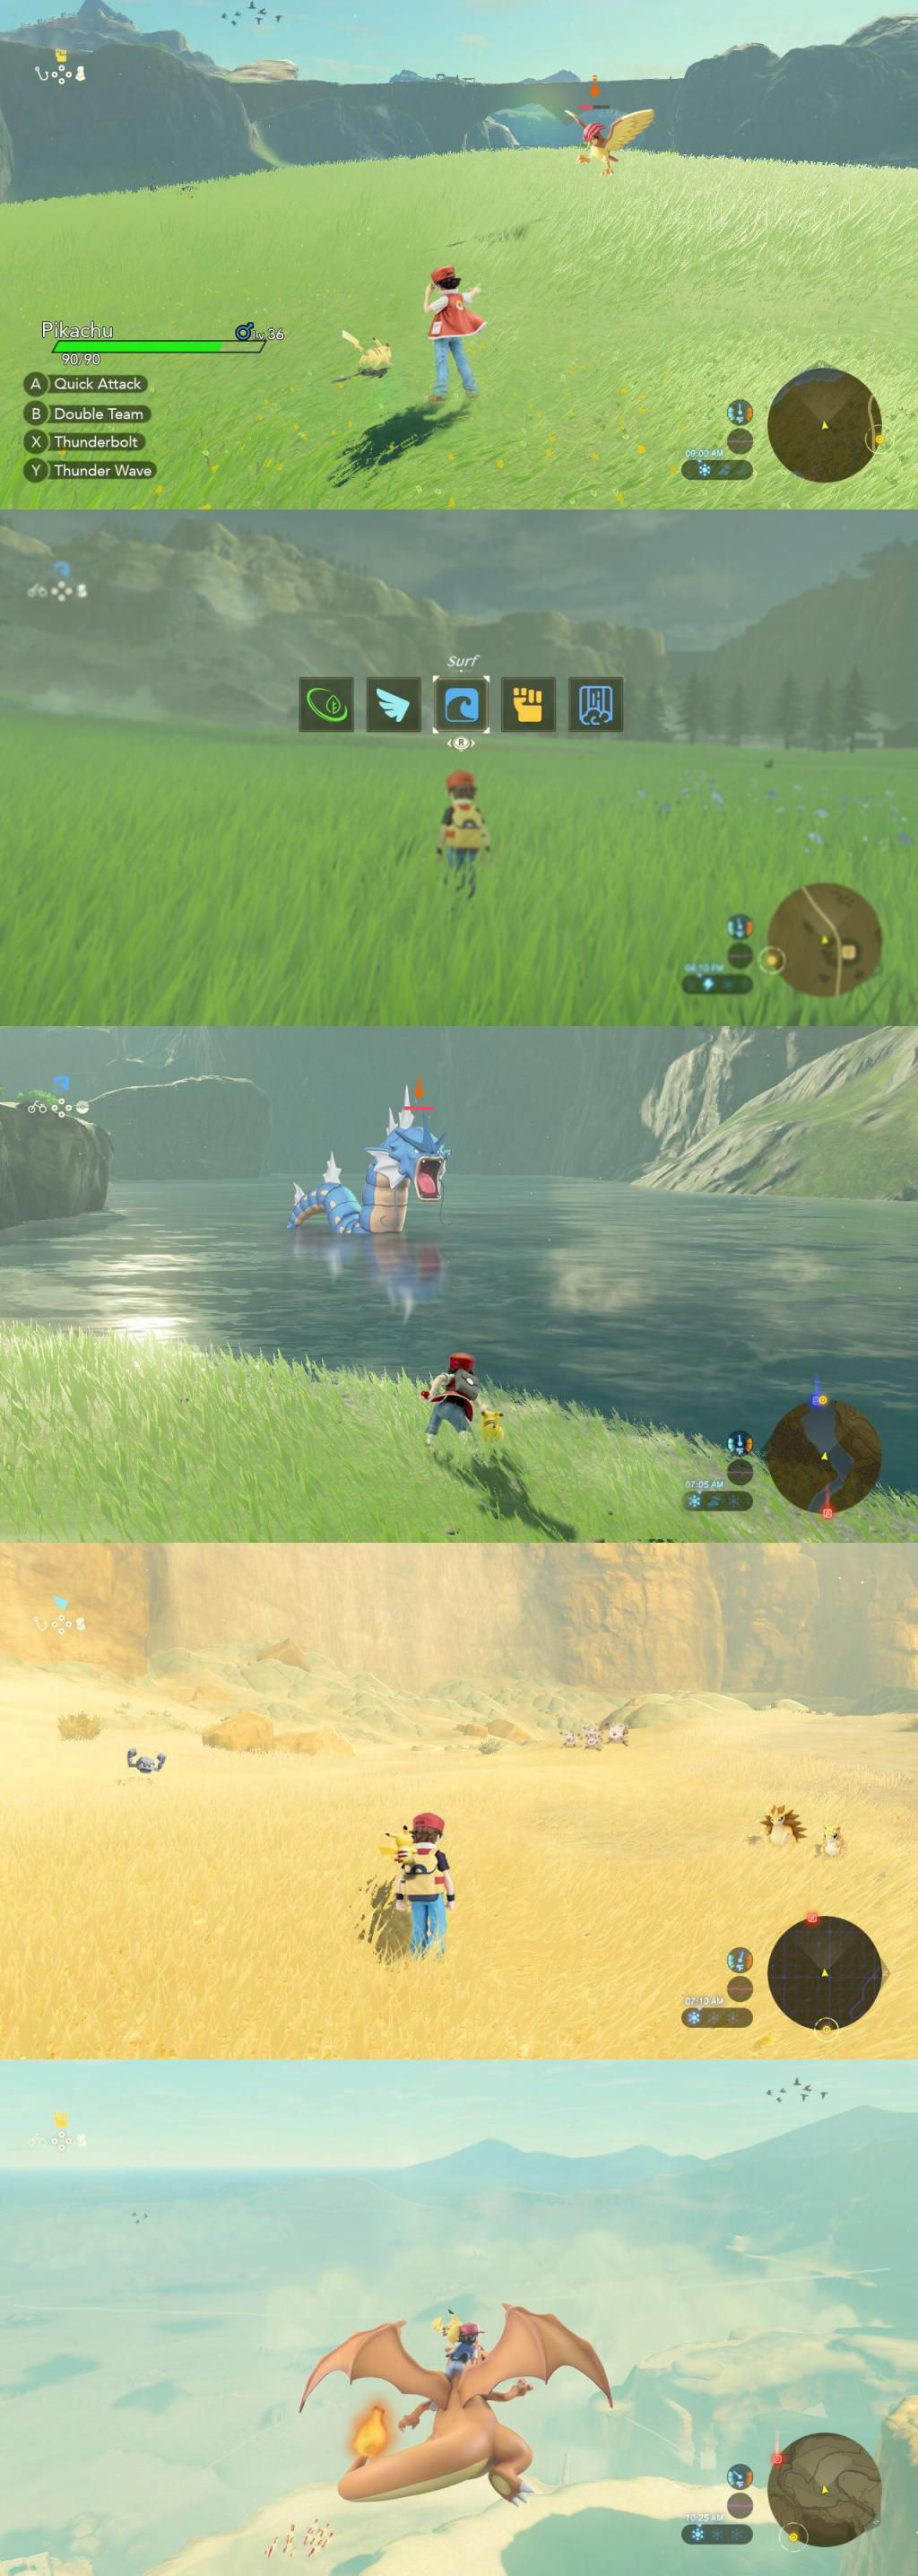 Pokémon Épée et Bouclier revisité dans le style de Breath of The Wild